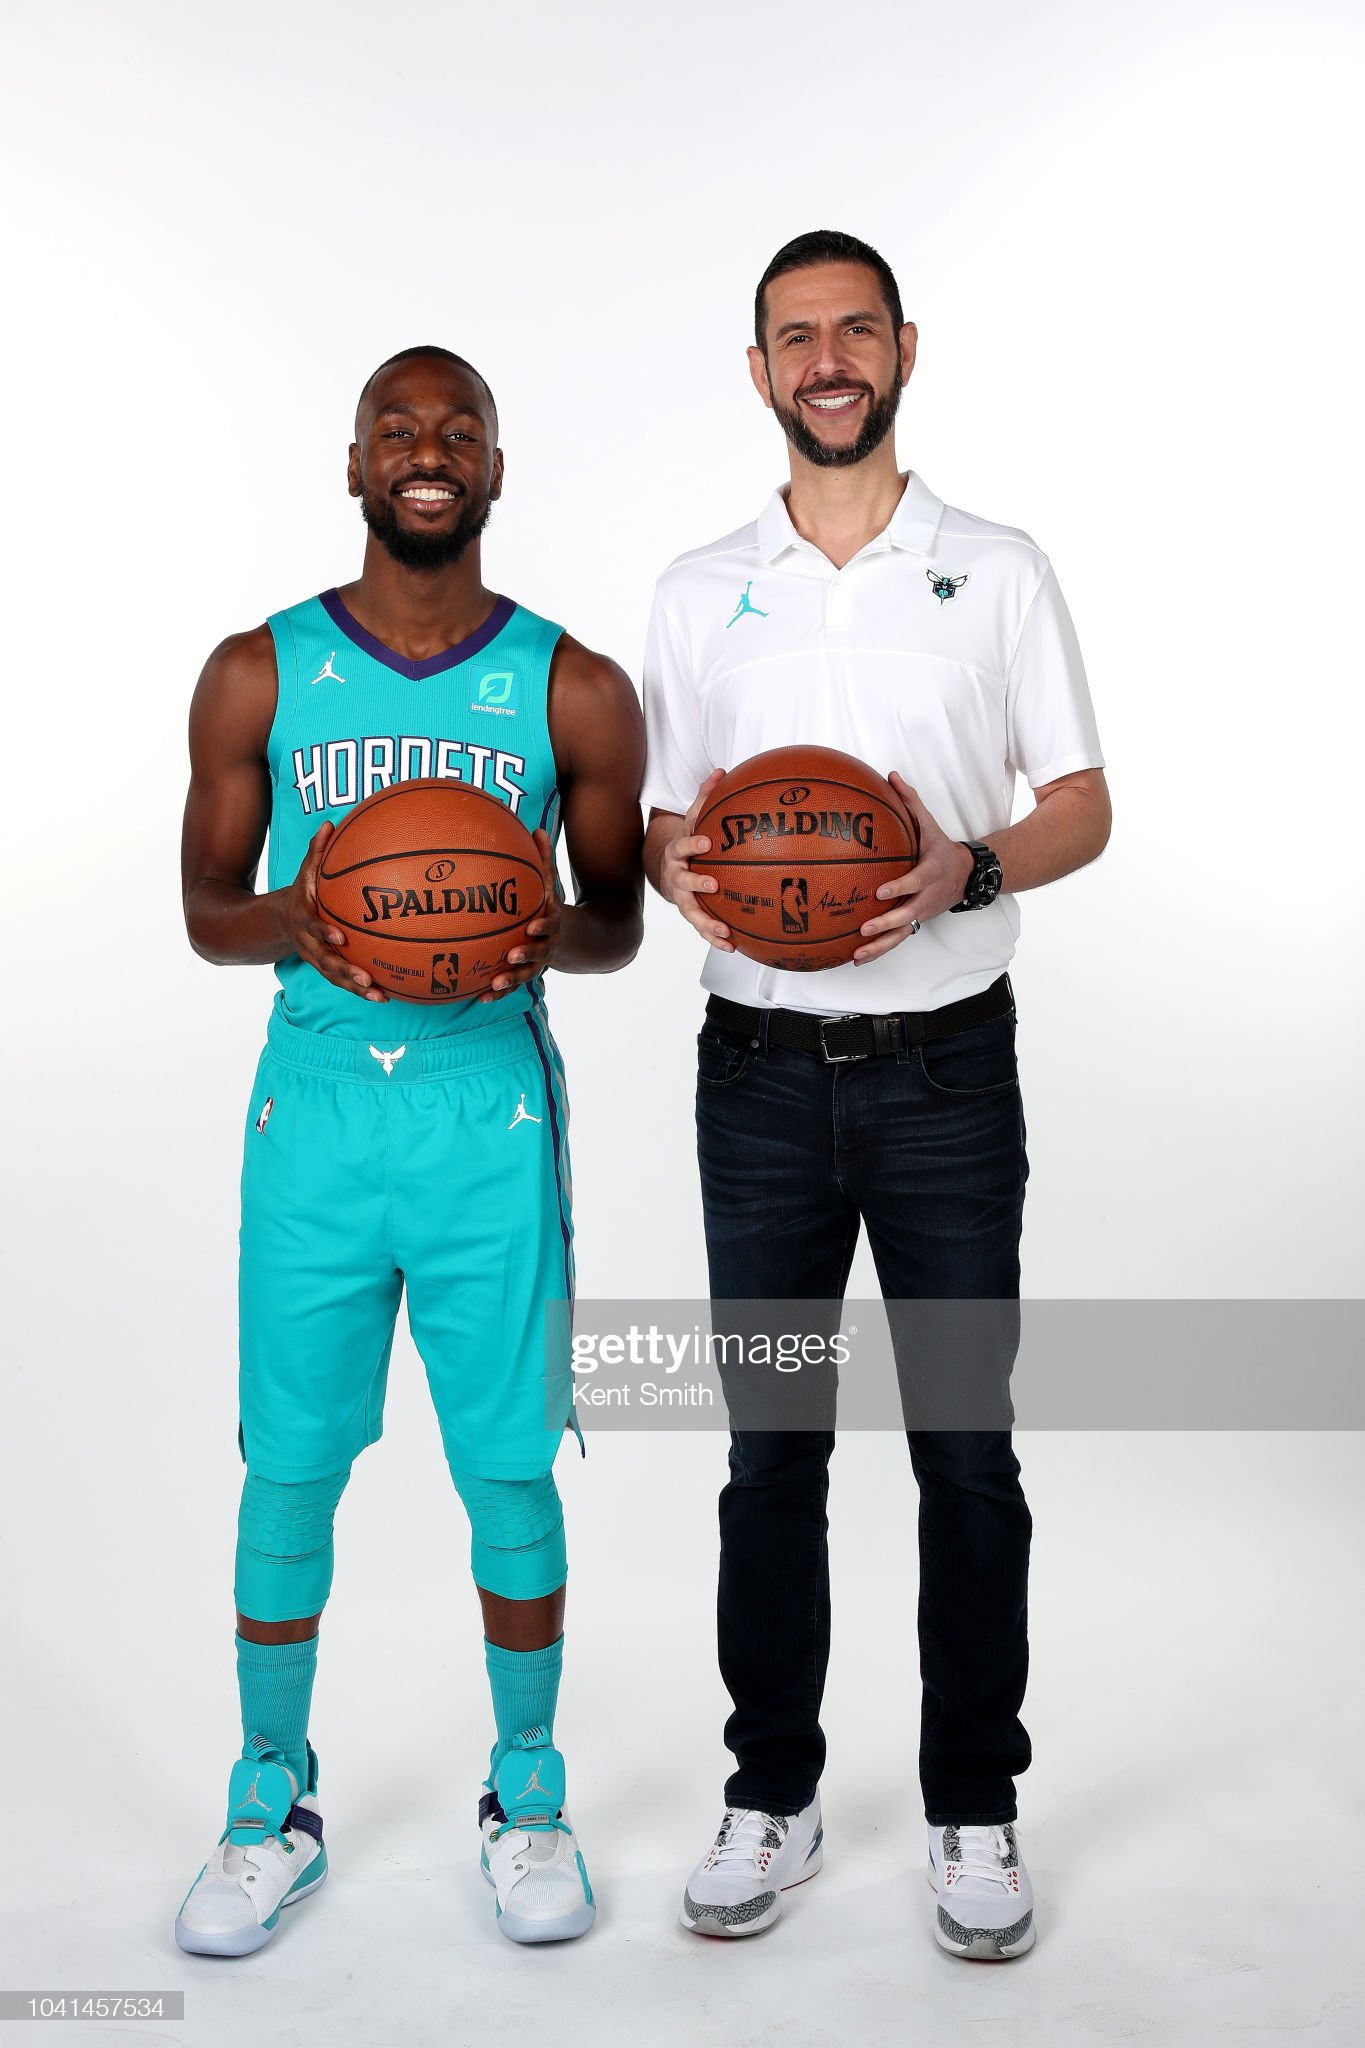 ¿Cuánto mide Kemba Walker? - Altura - Real height Kemba-walker-and-head-coach-james-borrego-of-the-charlotte-hornets-picture-id1041457534?s=2048x2048